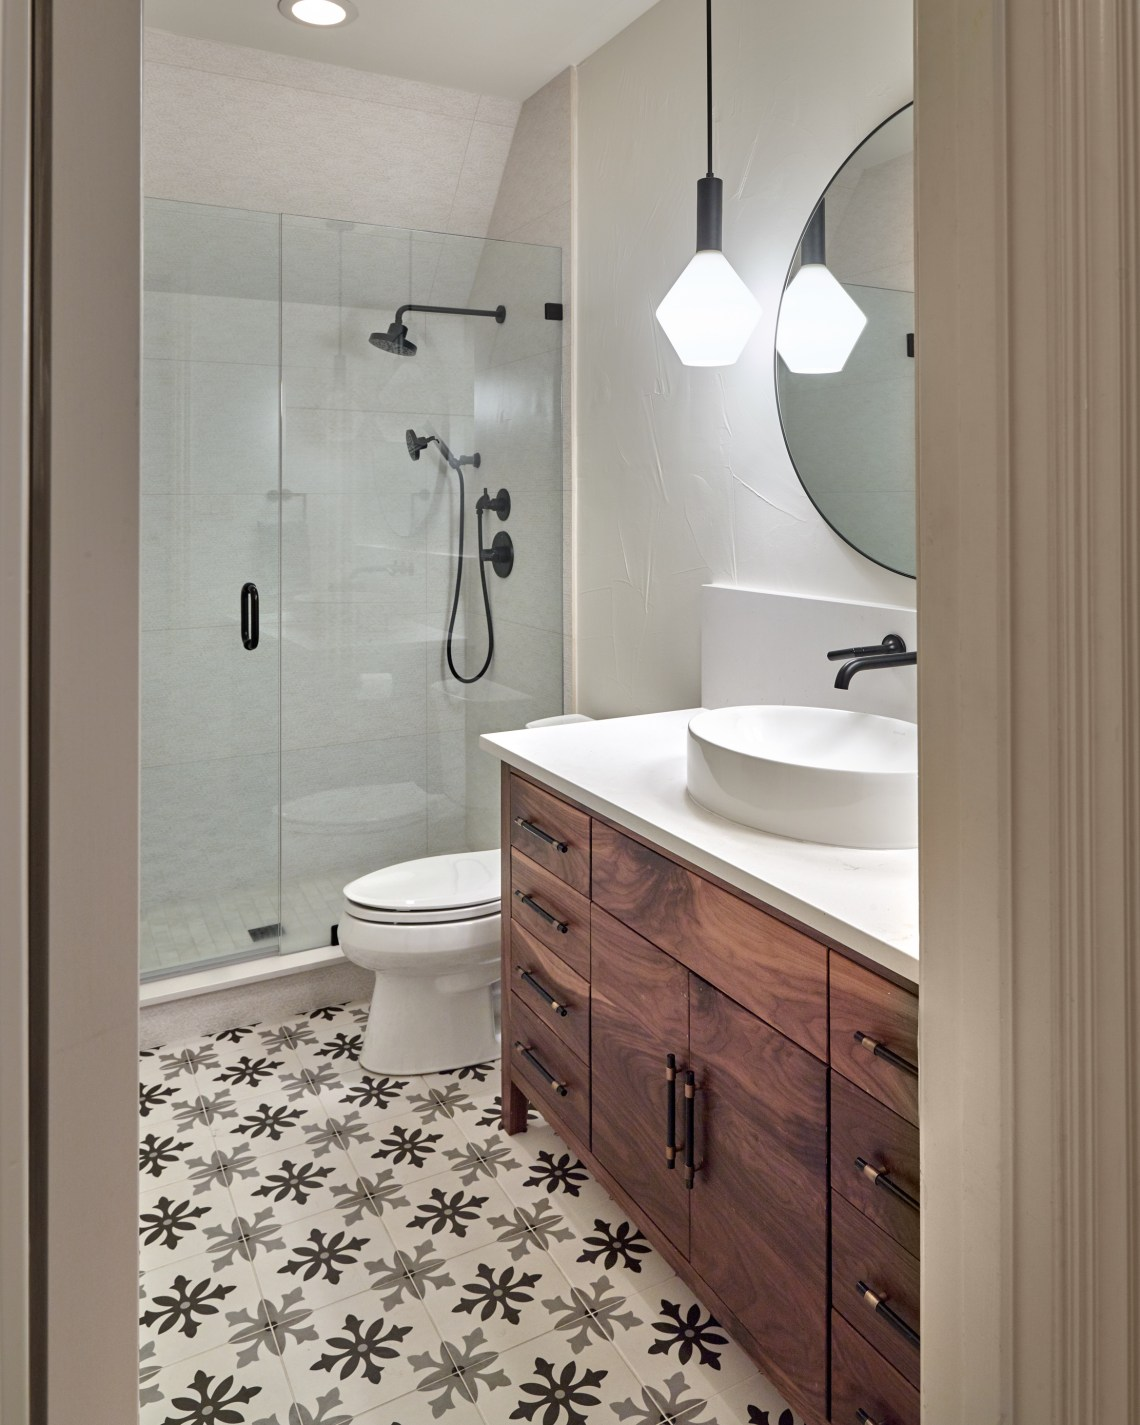 Bathroom with cement patterned tile floor and walnut vanity and vessel sink with black plumbing fixtures